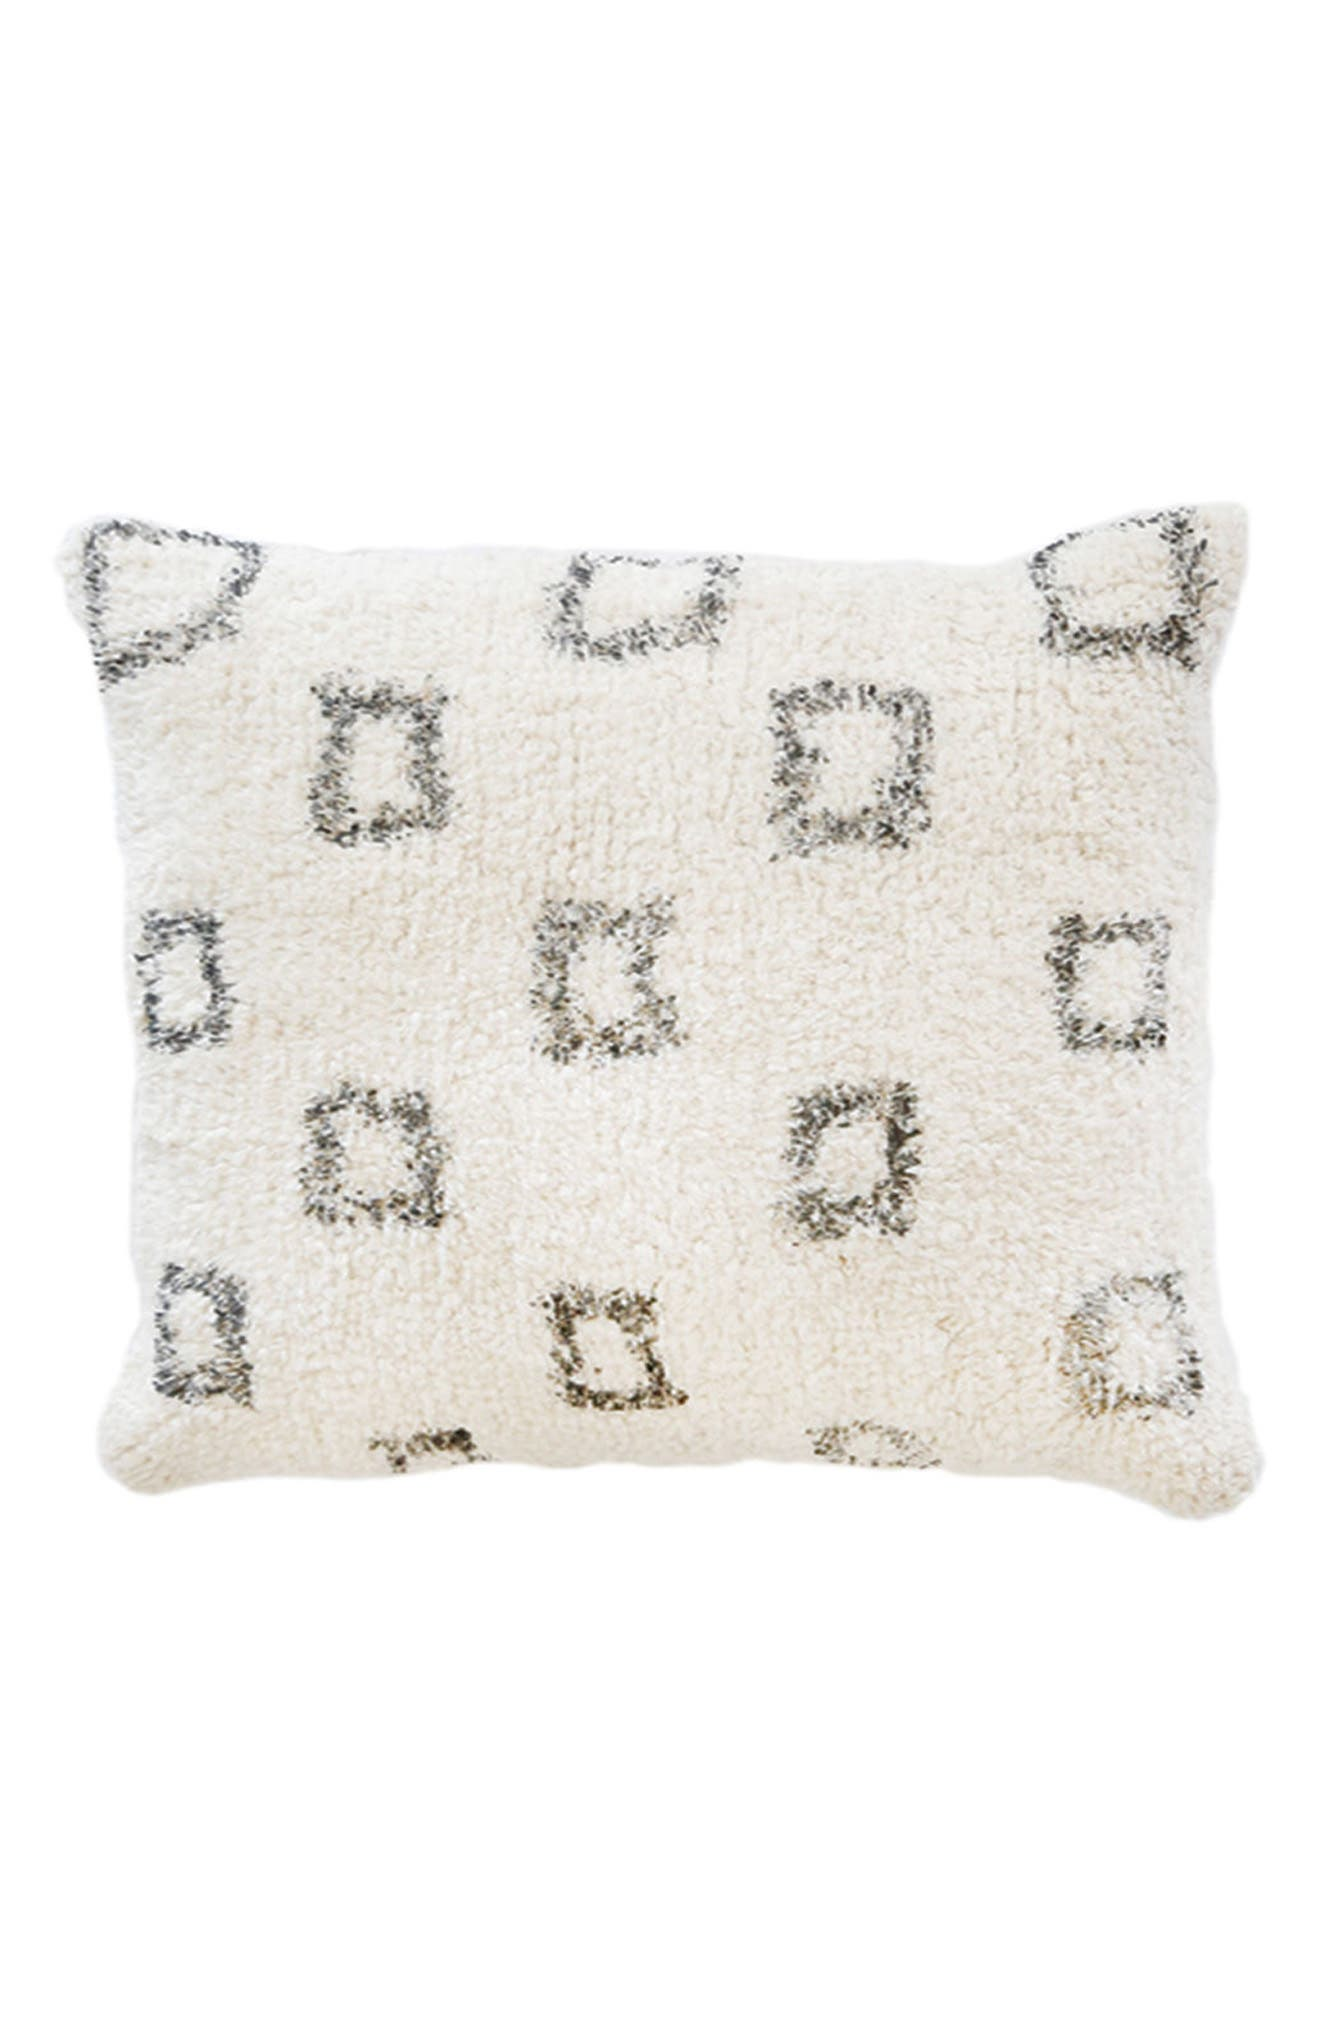 Bowie Big Accent Pillow,                         Main,                         color, 900